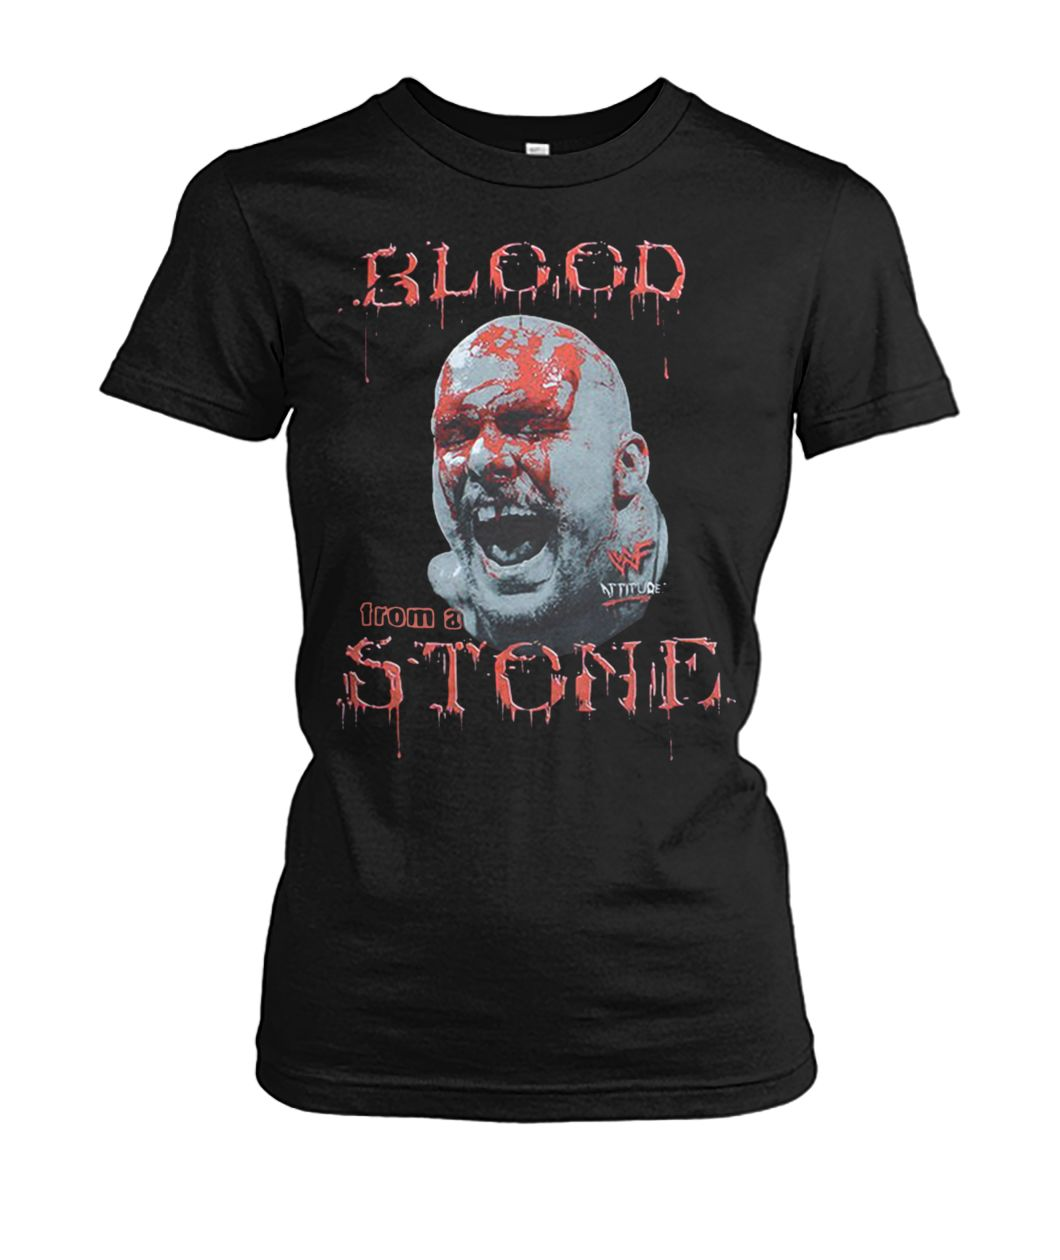 Cold steve austin bloody face blood from a stone women's crew tee